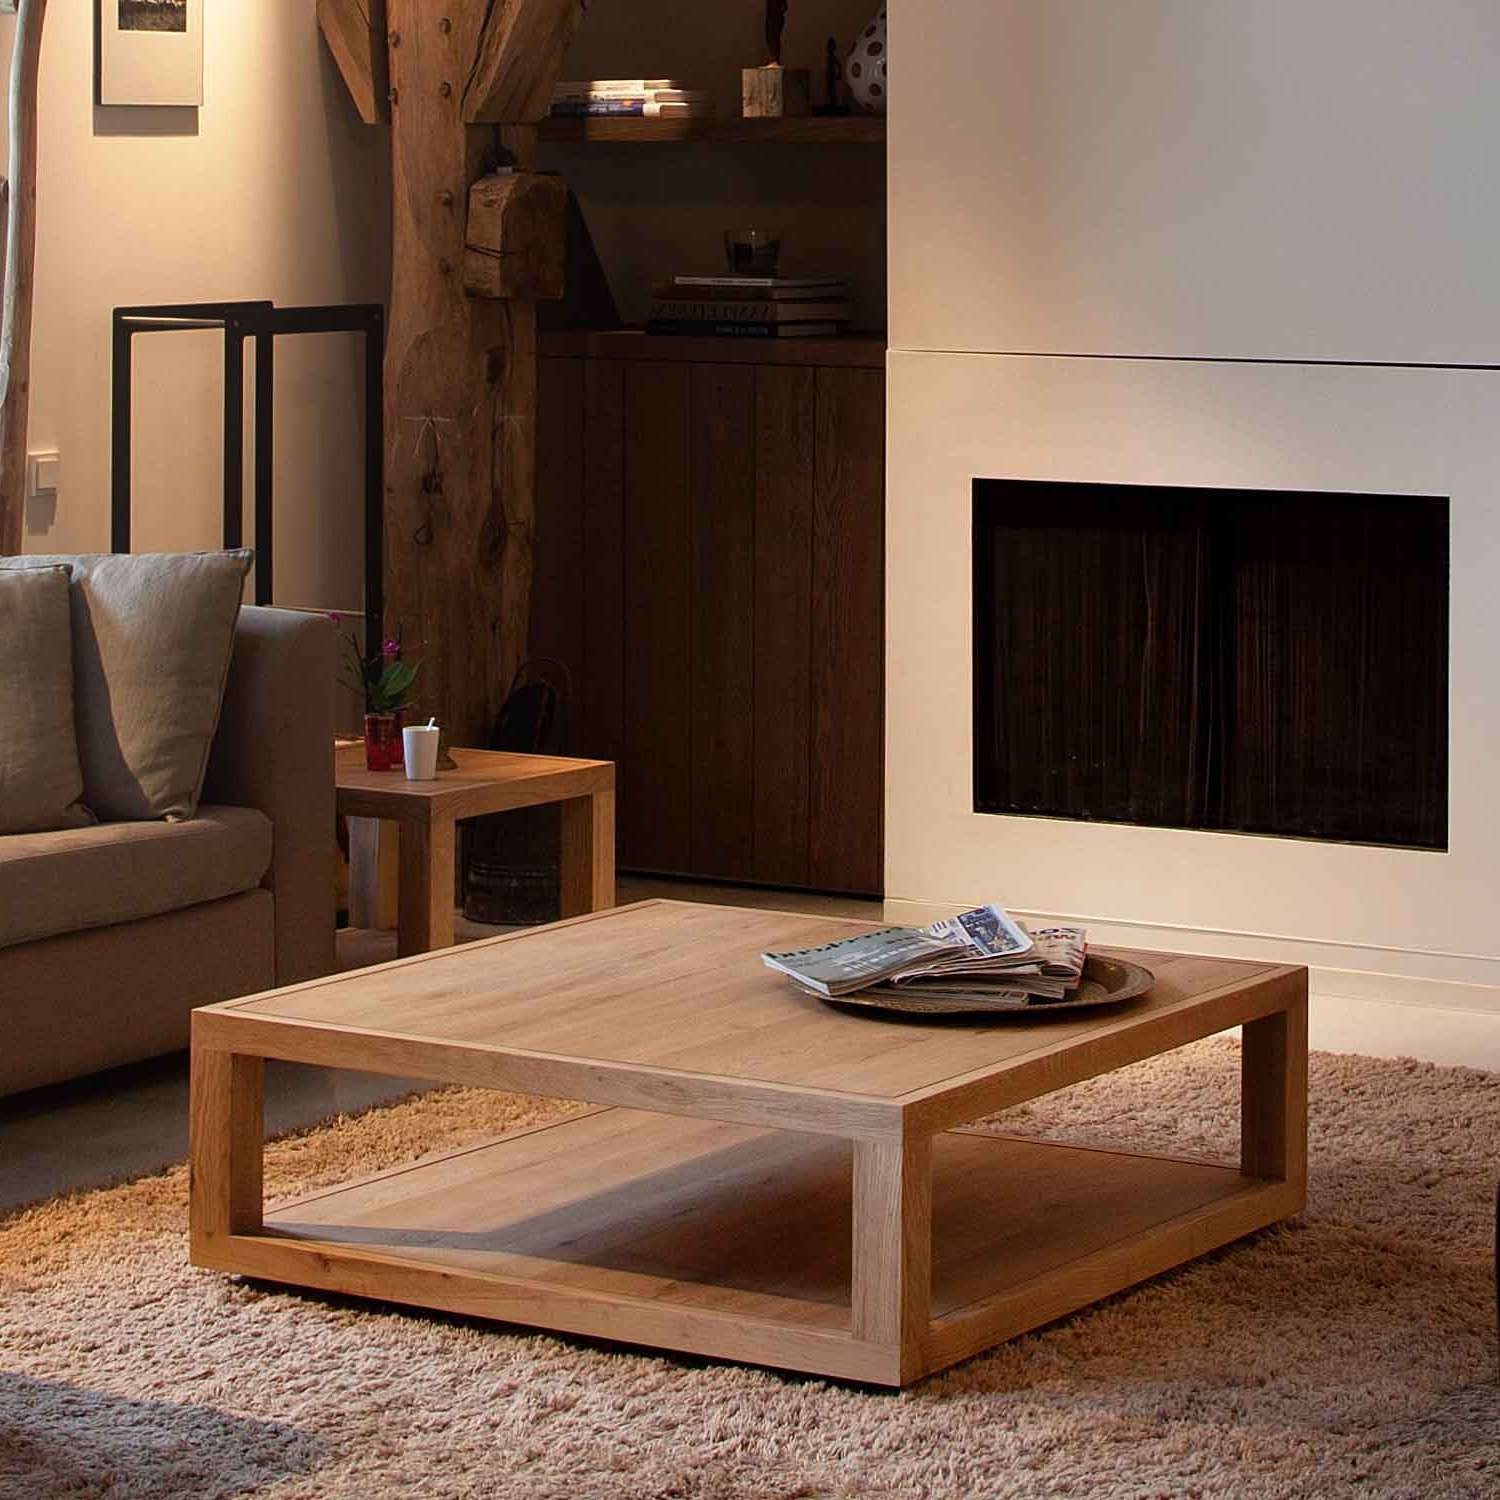 Custom Diy Low Square Wood Oak Coffee Table With Tray And For Trendy Small Coffee Tables With Storage (View 18 of 20)